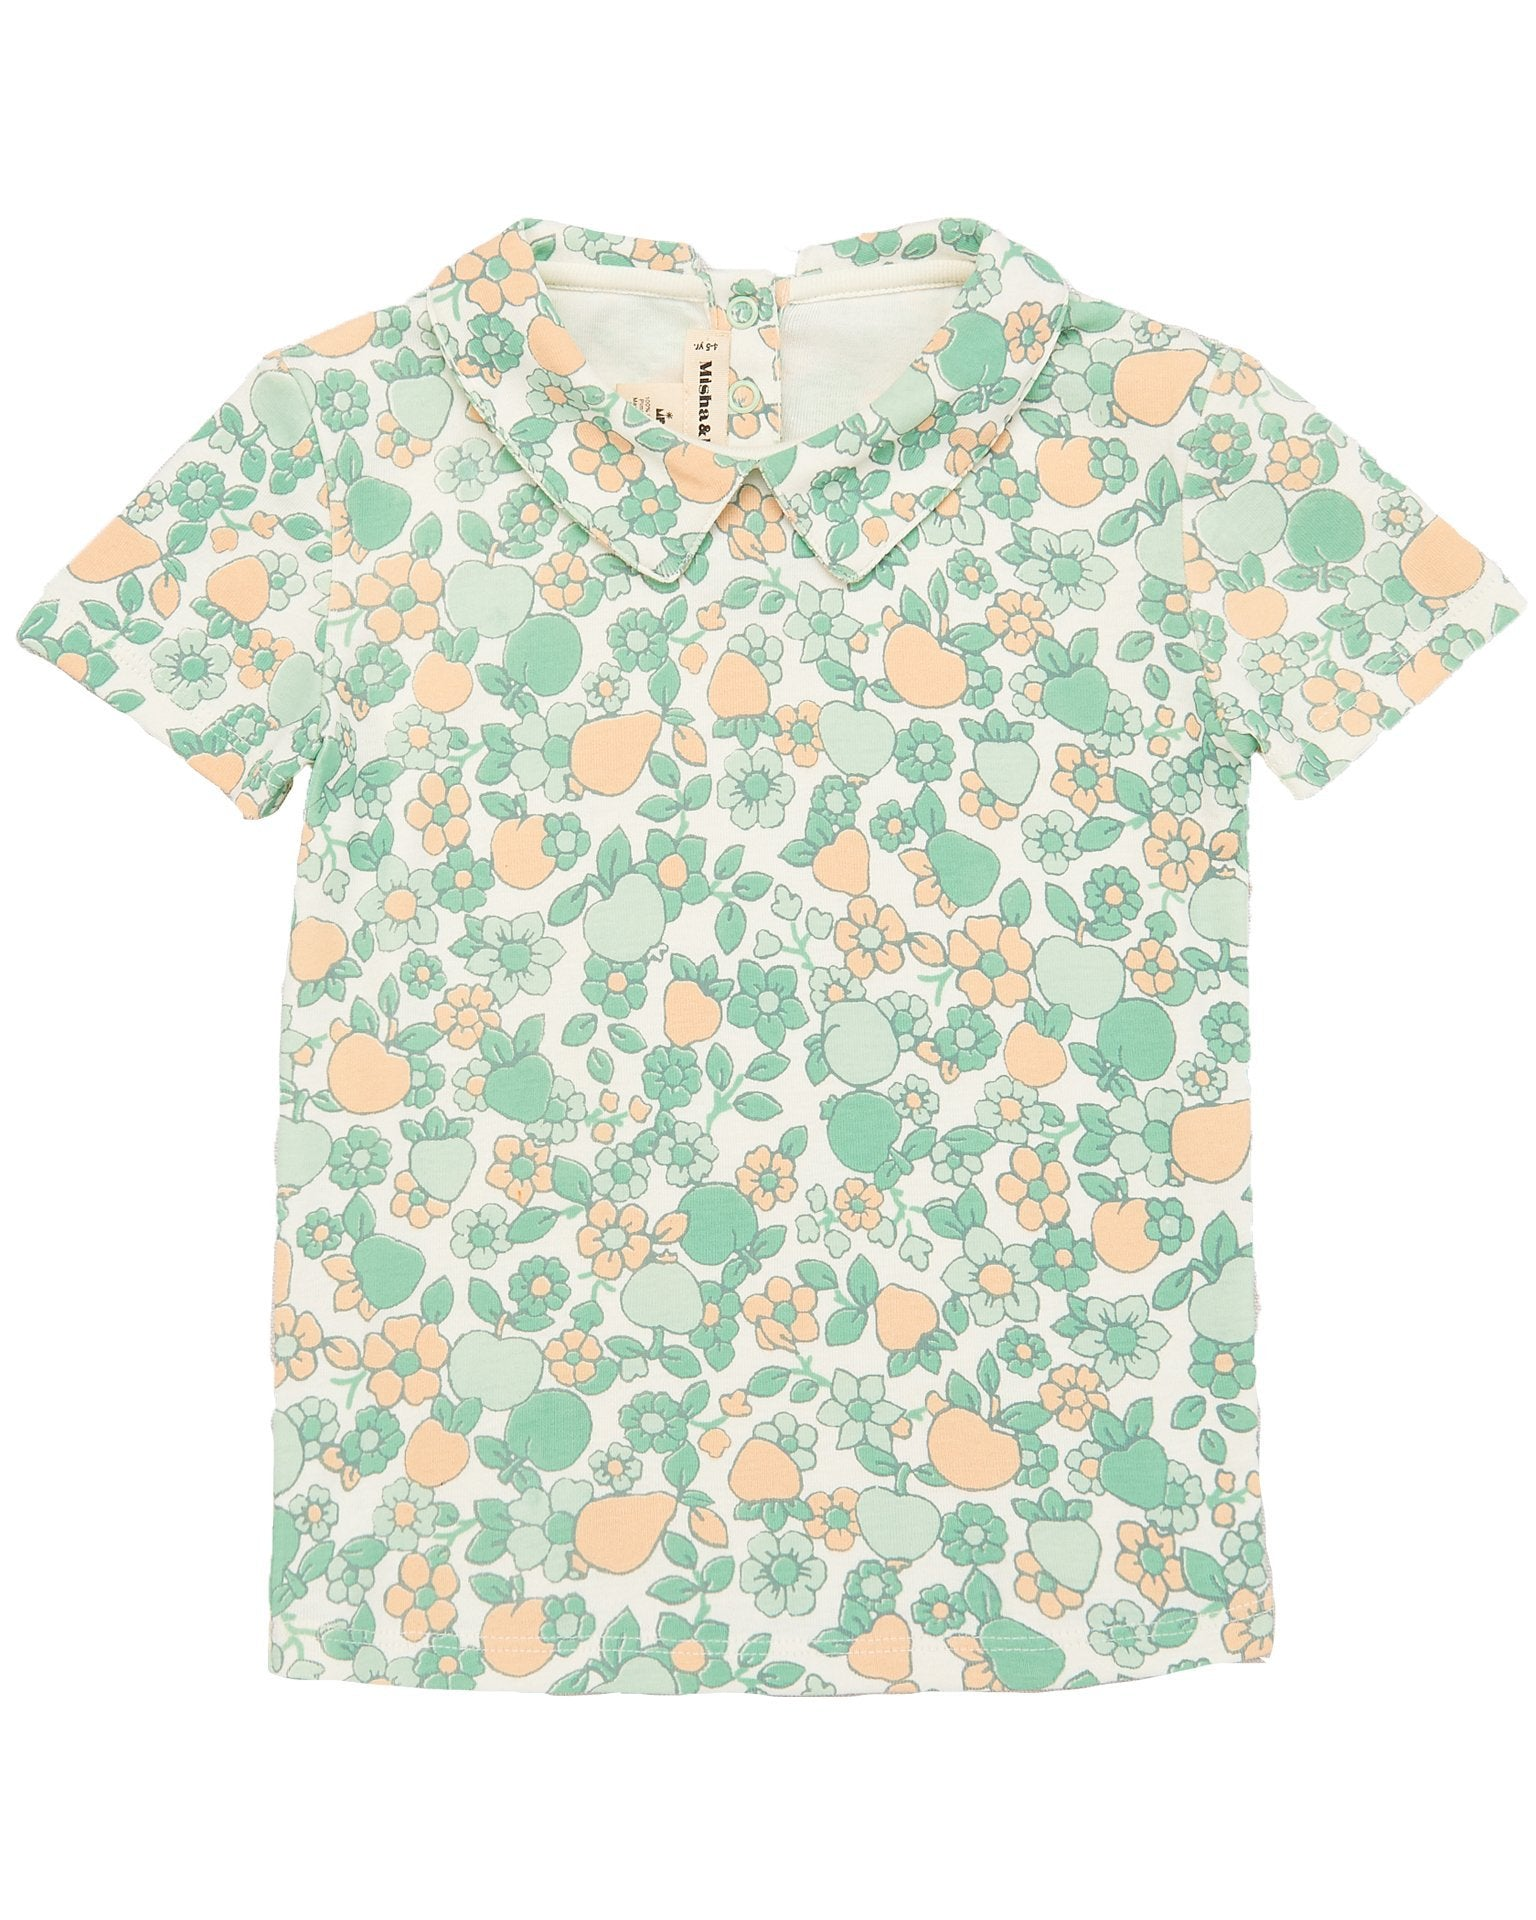 Little misha + puff girl collar tee in mint orchard print